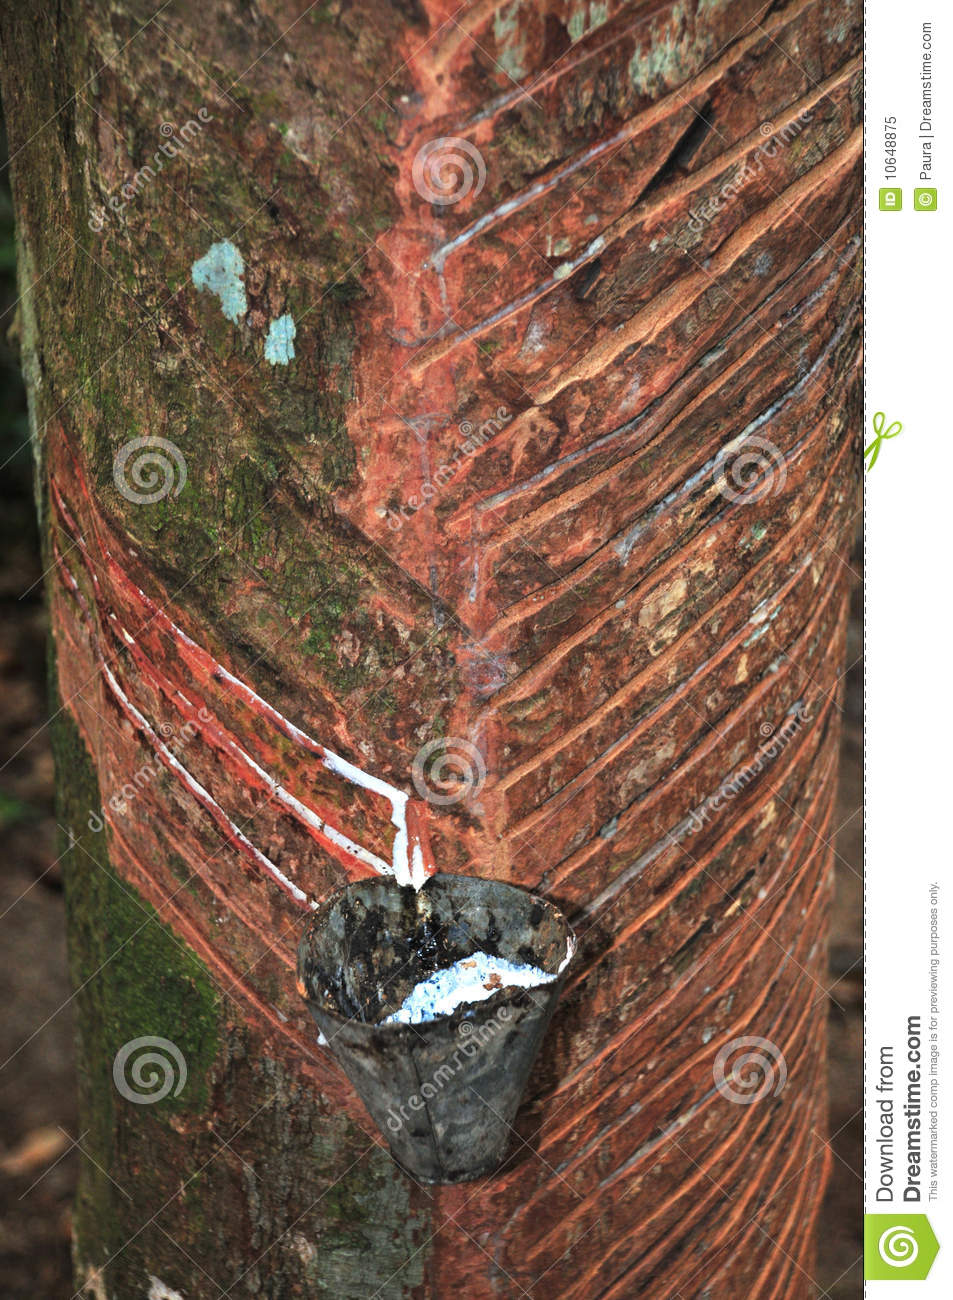 Rubber Tree dripping latex